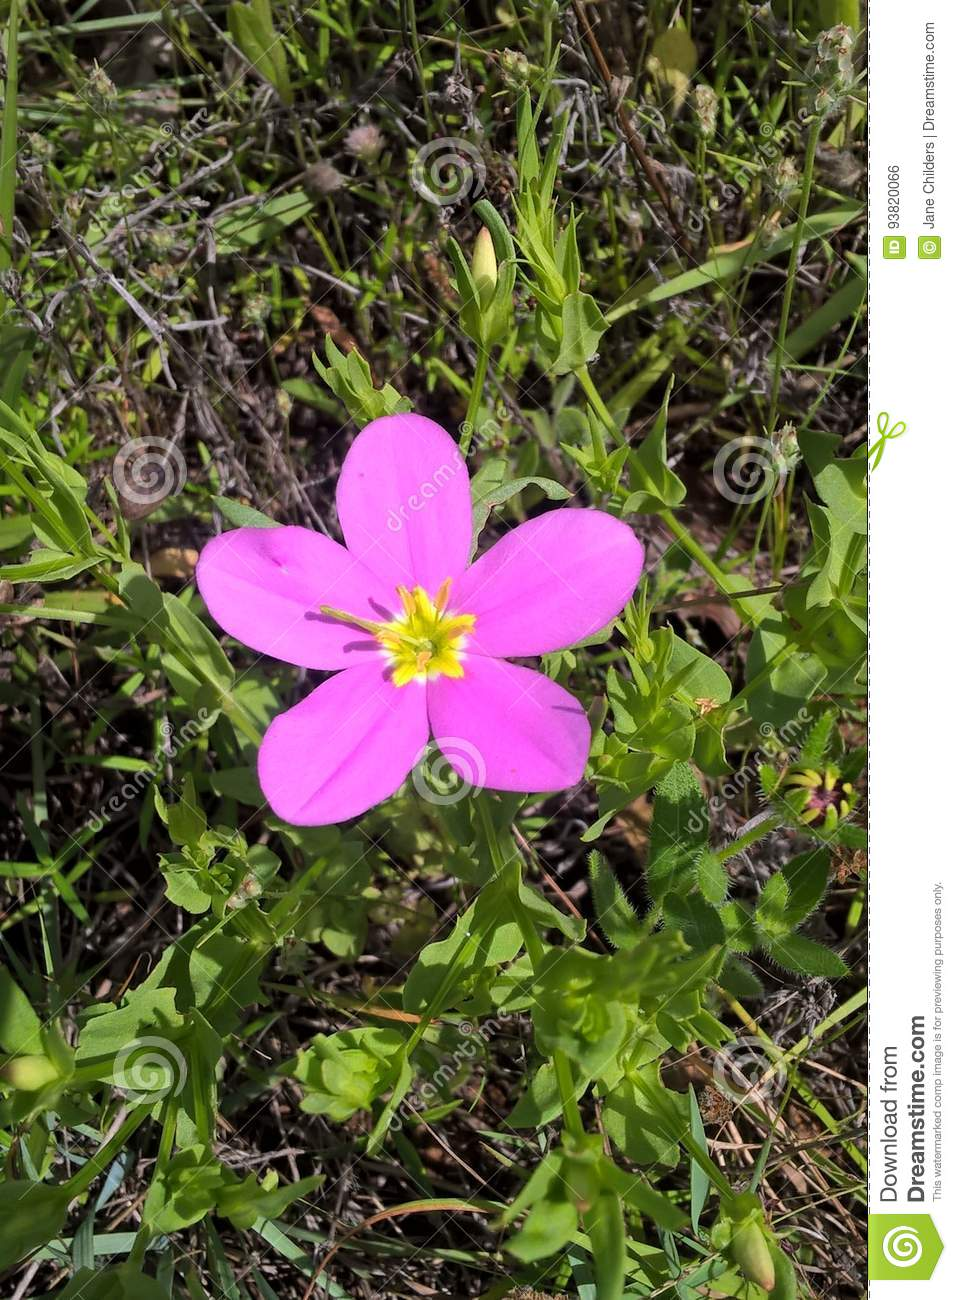 Texas Star Flower Stock Photo Image Of Perennial Bloom 93820066